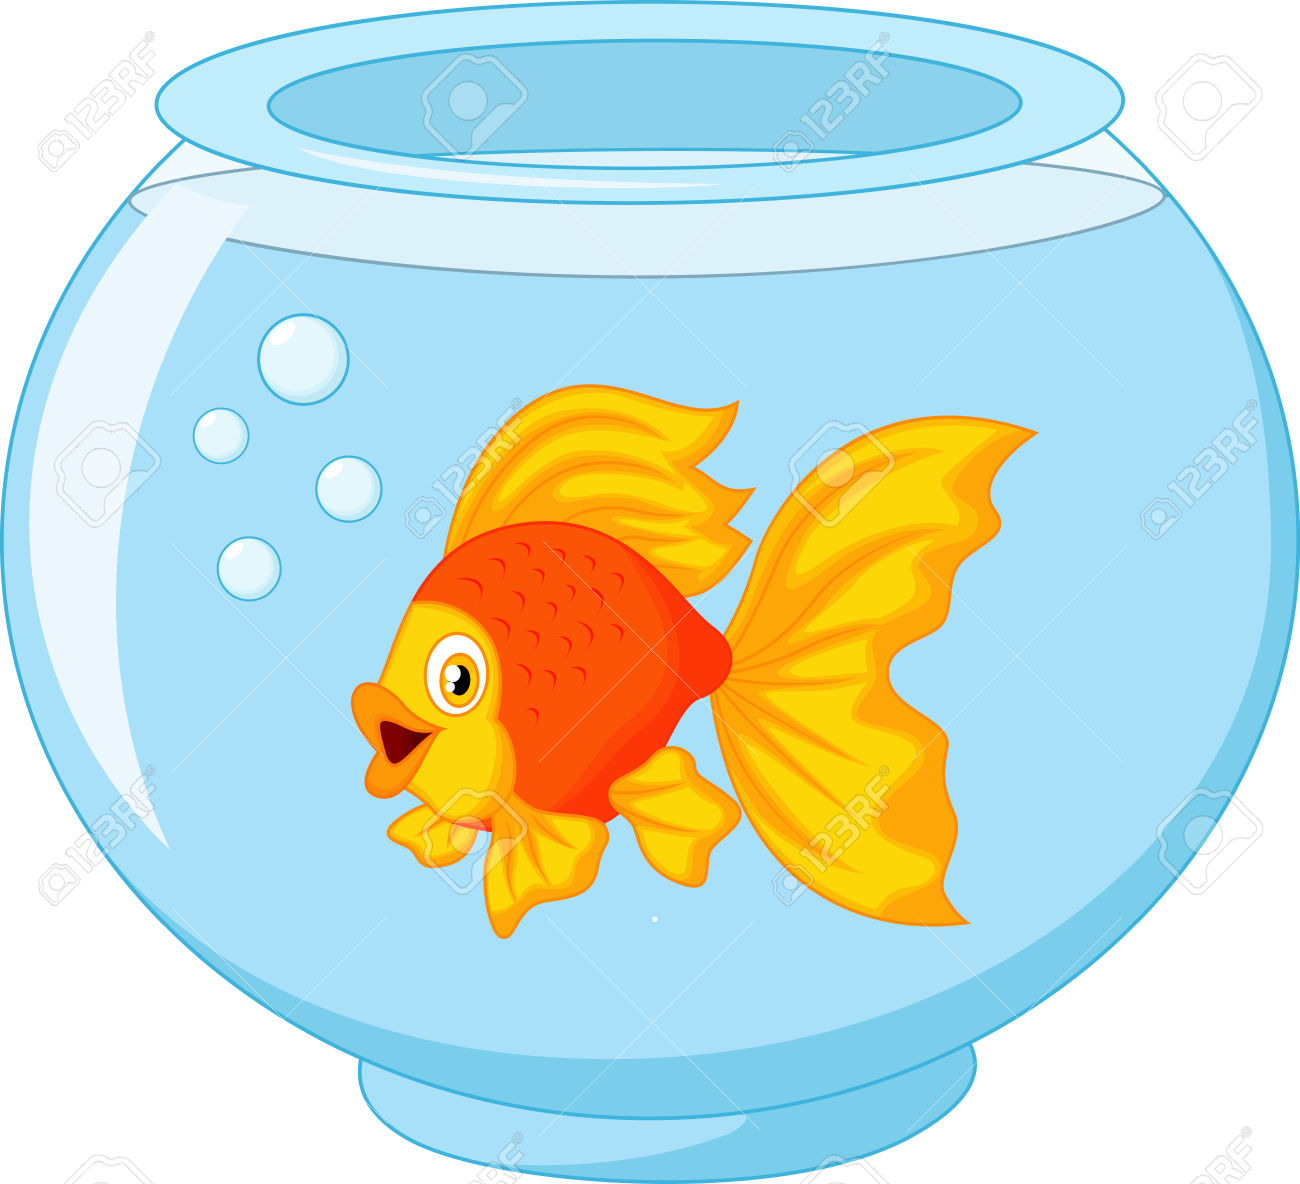 Goldfish in a fish bowl